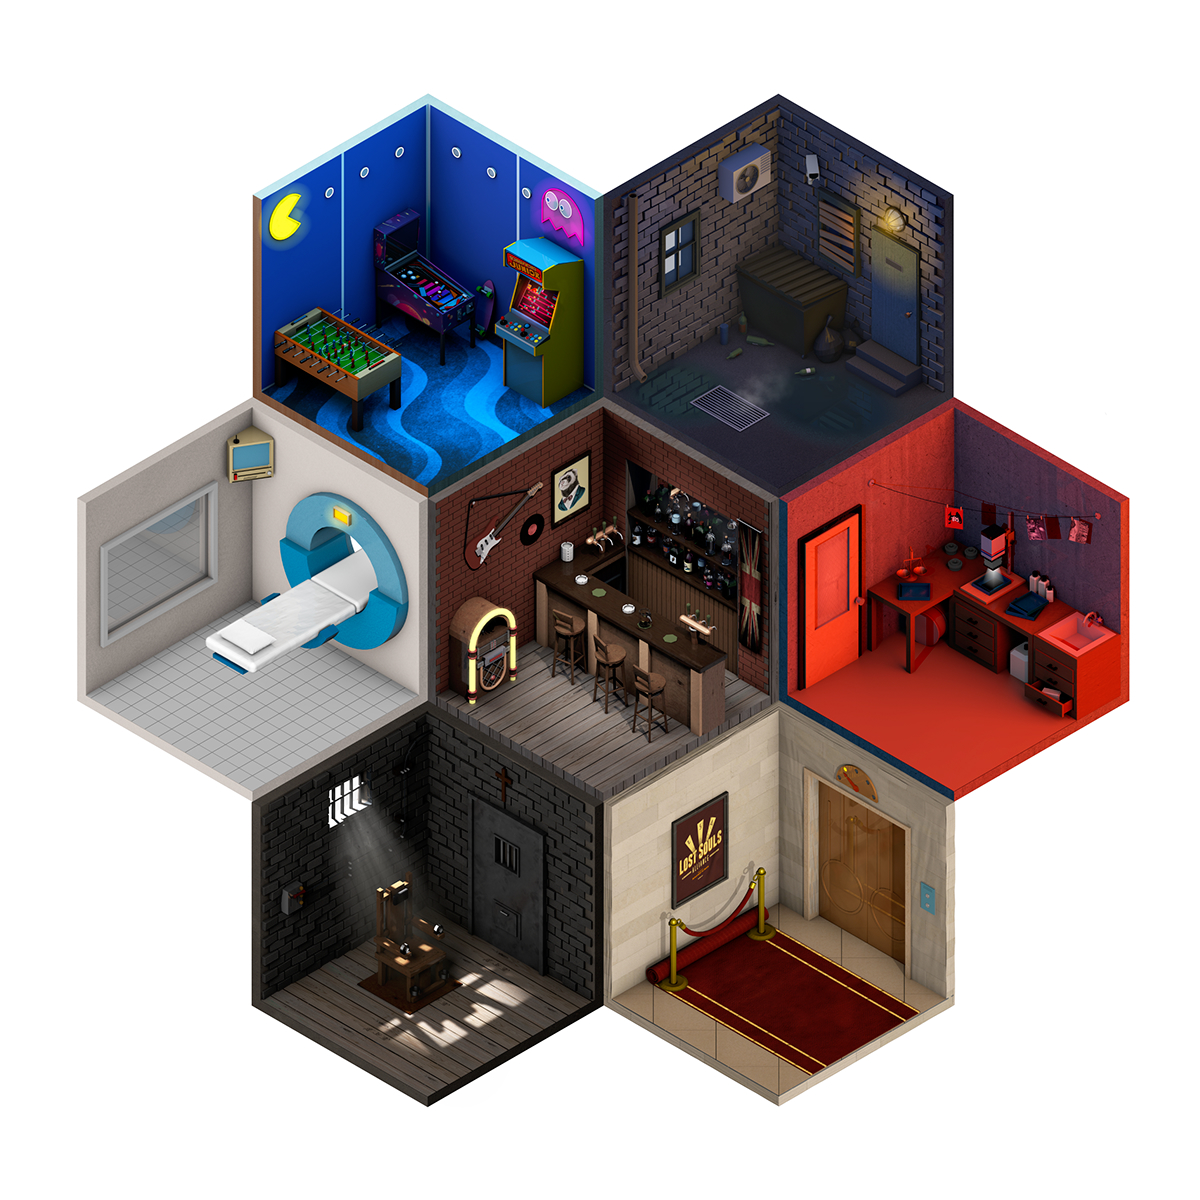 game design lowpoly Low Poly cinema4d c4d Isometric hex room concept Games Level Design gamedesign Tiny digitalart